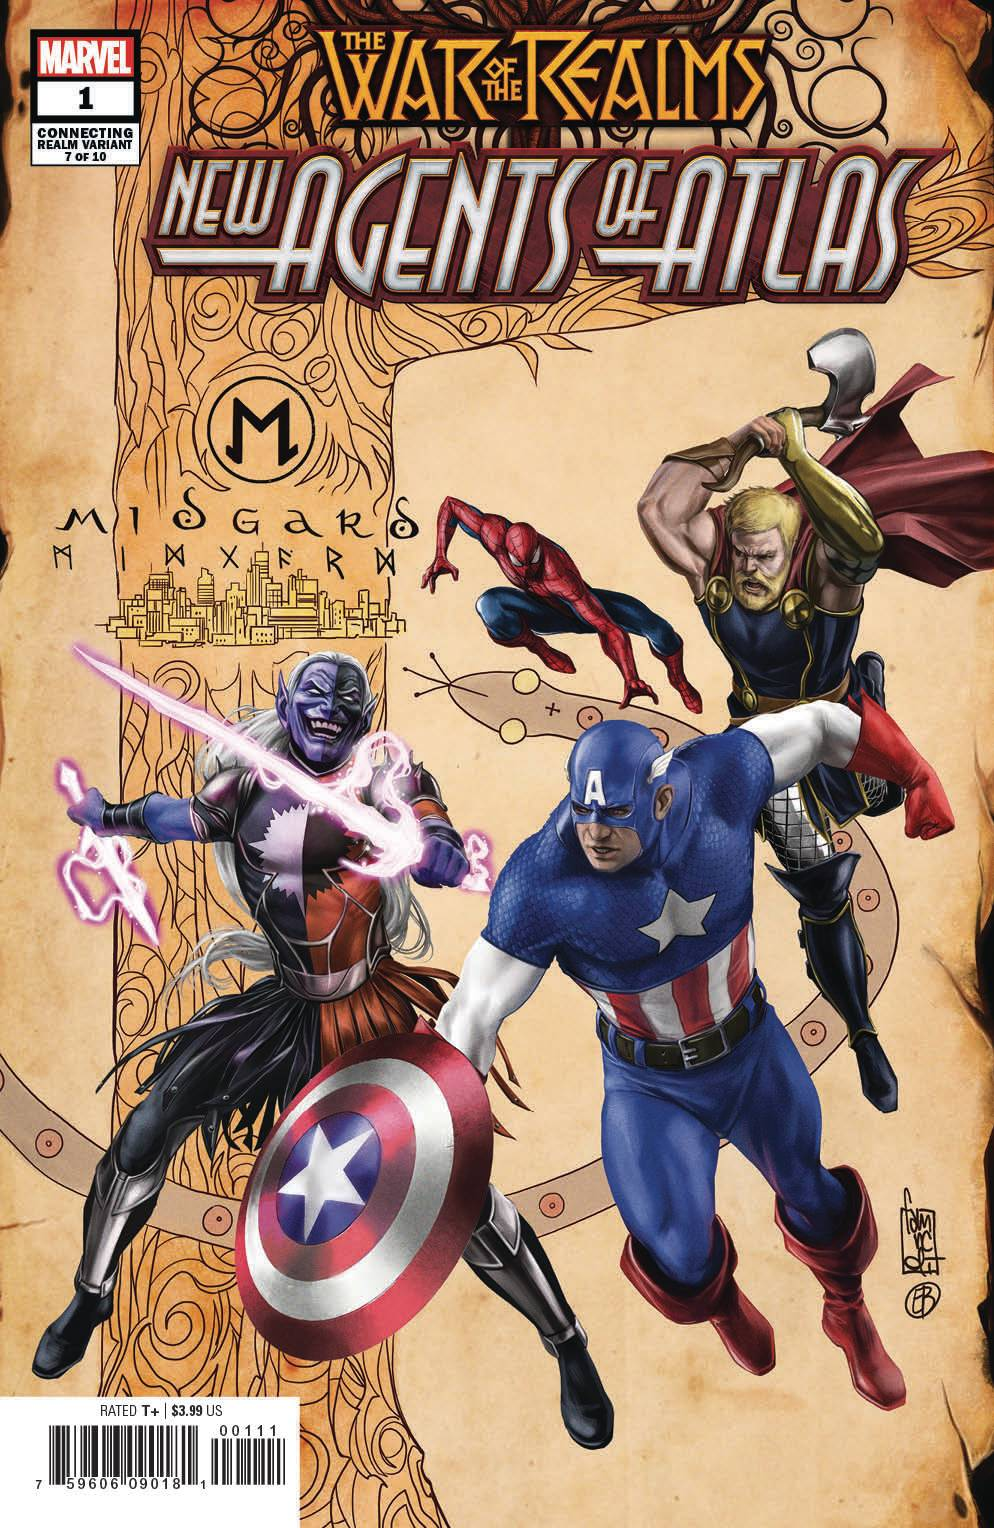 WAR OF REALMS NEW AGENTS OF ATLAS 1 of 4 DJURDJEVIC CONNECTING REALM VAR.jpg